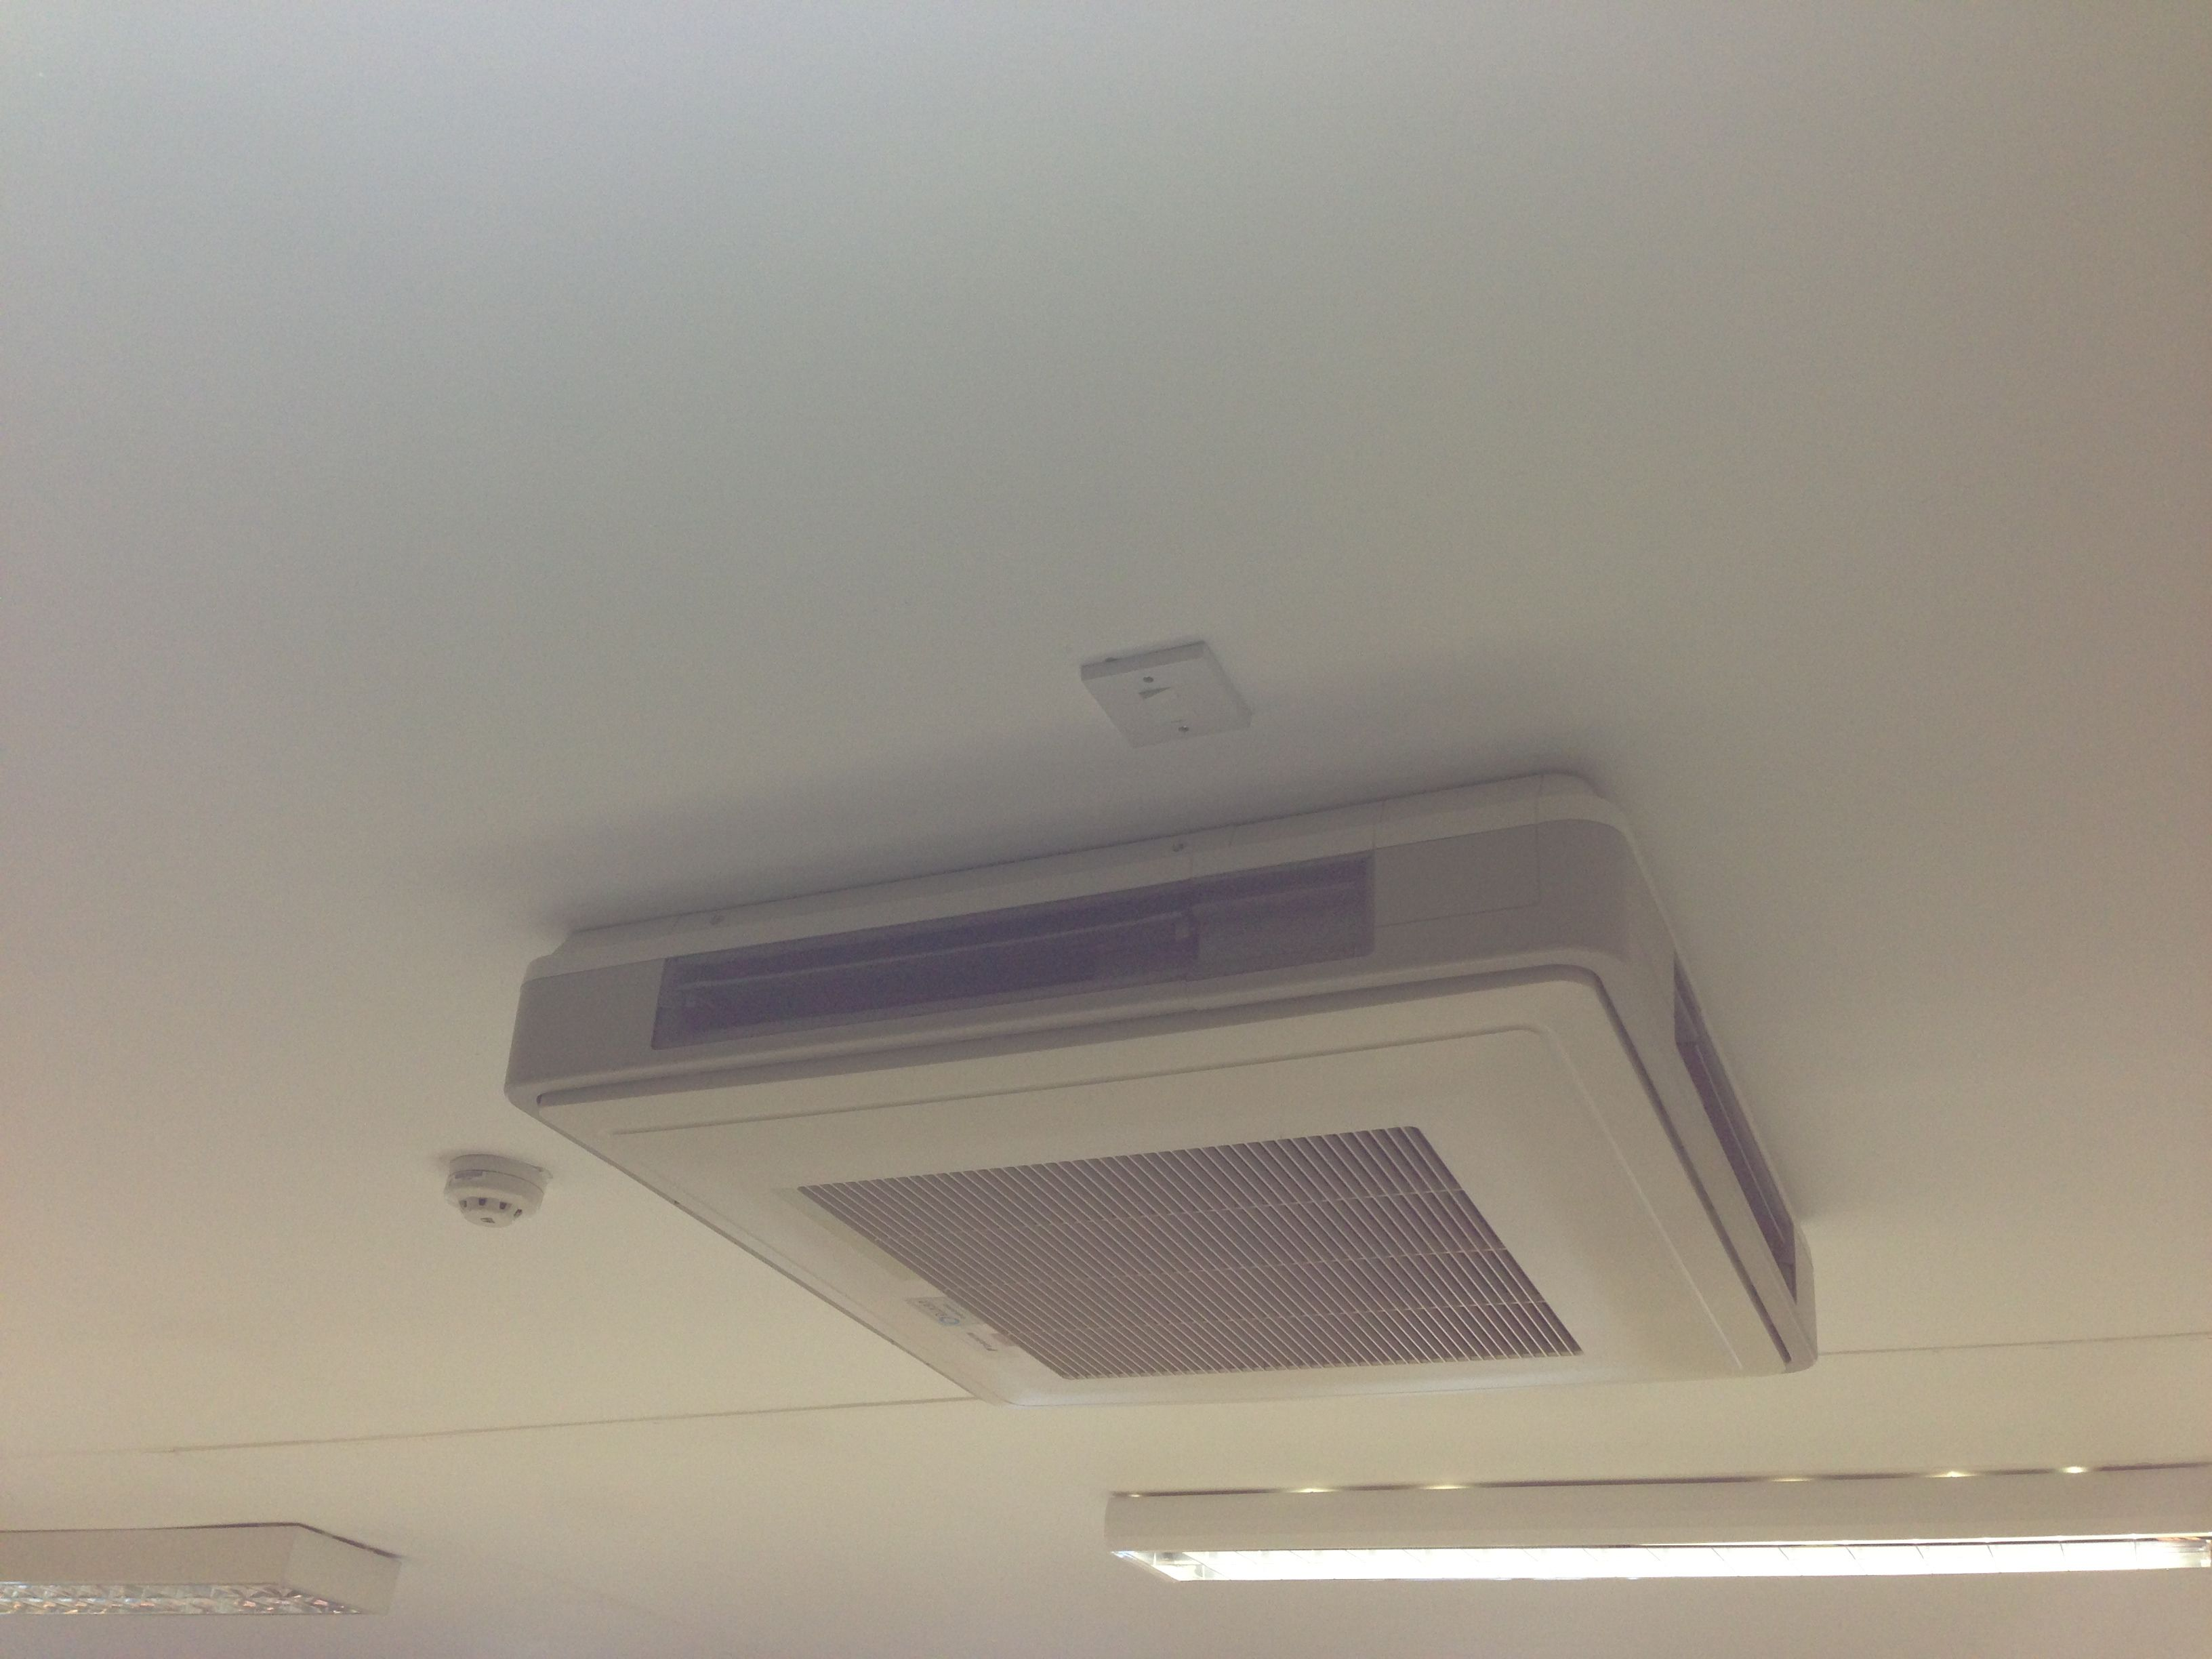 Daikin Under Ceiling 7kw Cassette Unit Perfect For Larger Rooms With No Ceiling Void No Ceilings Home Appliances The Unit